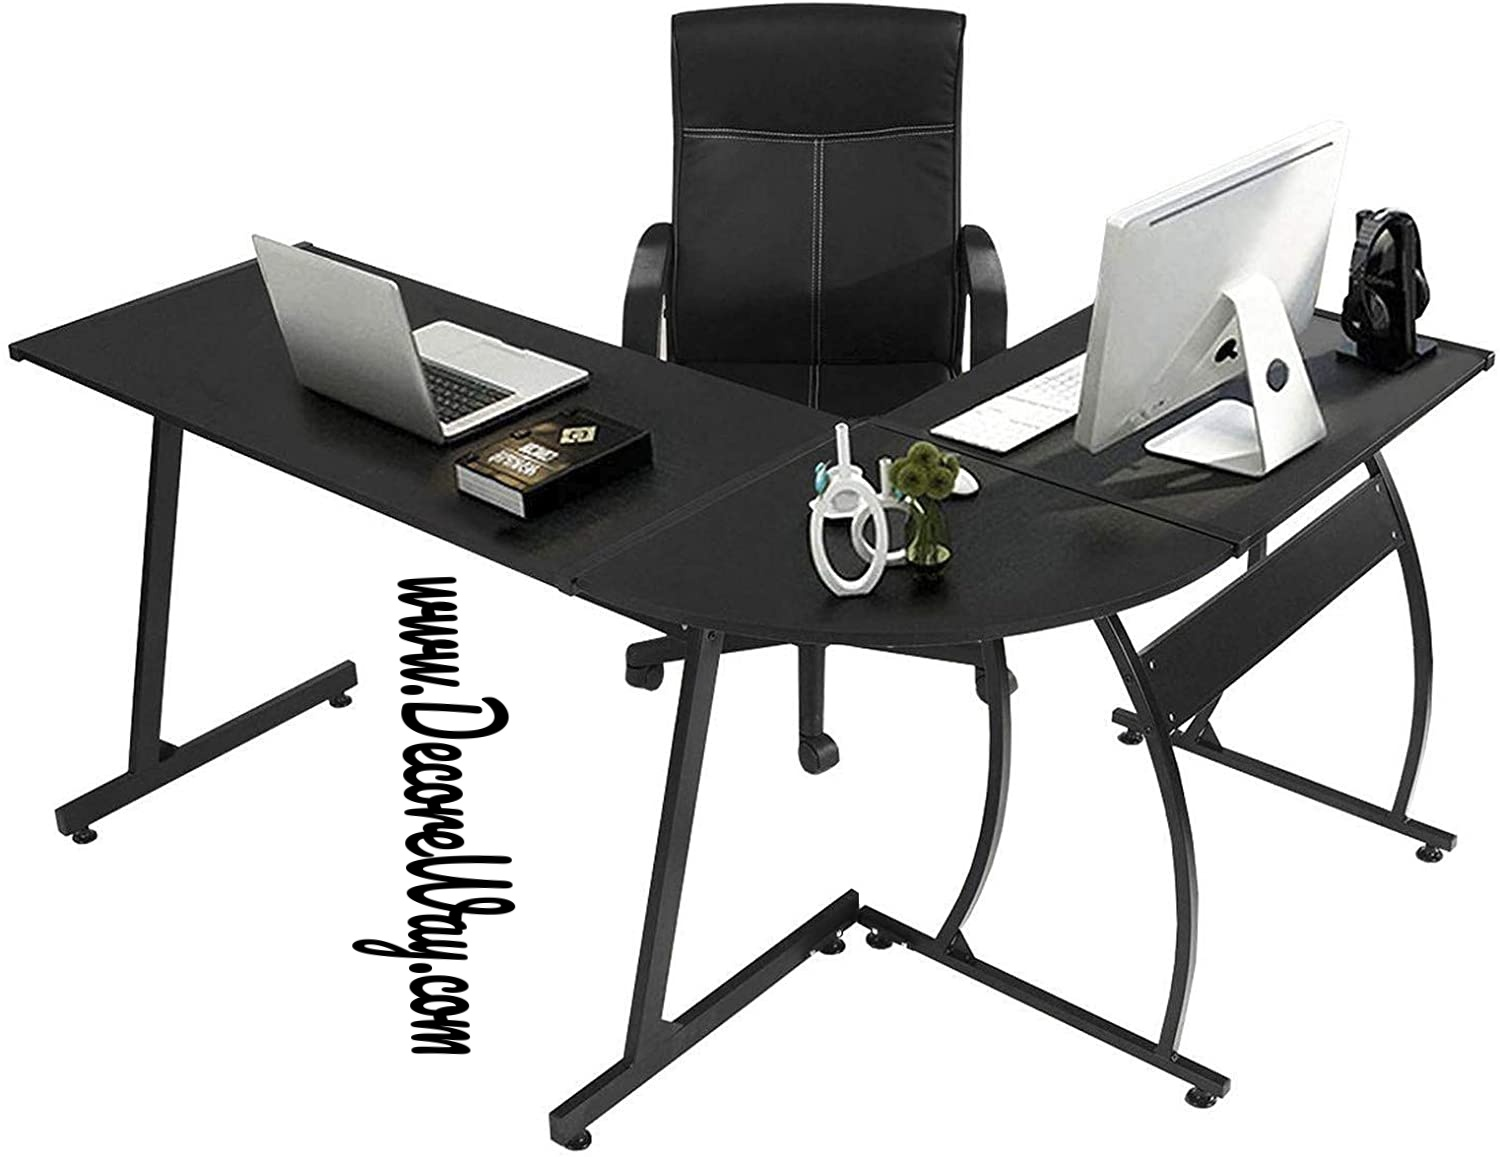 L Shaped Gaming Table Workstation for Home Office Bedroom